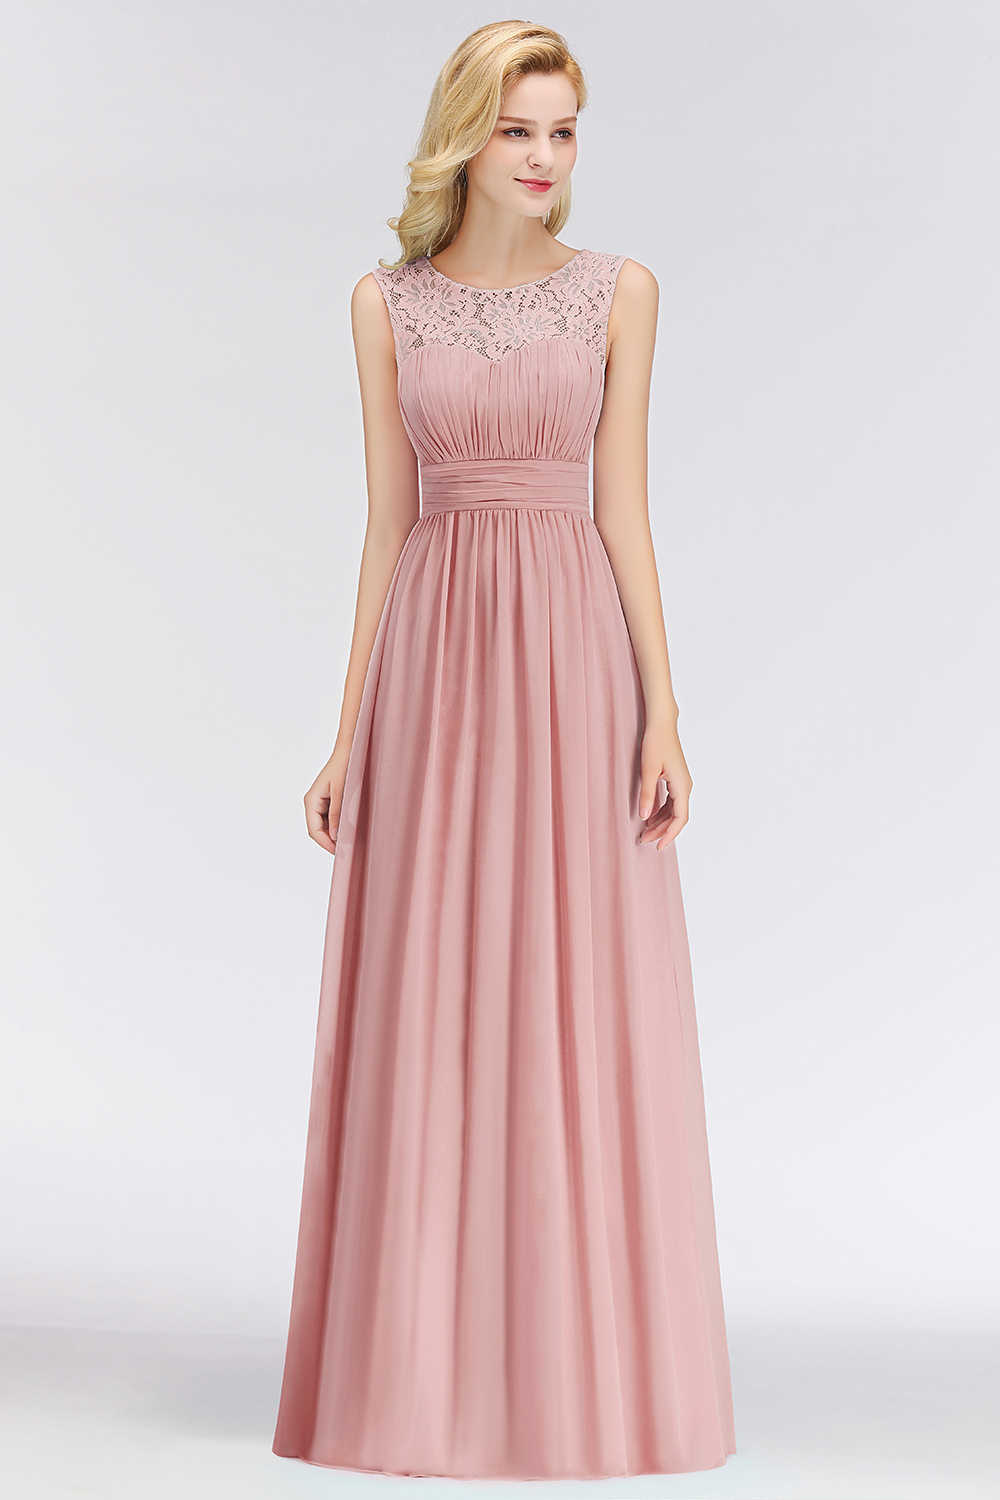 891b7c1b594 ... 2019 Elegant Dusty Rose Lace Bridesmaid Dresses Pleat O-Neck Sleeveless  Chiffon Wedding Party Dresses ...